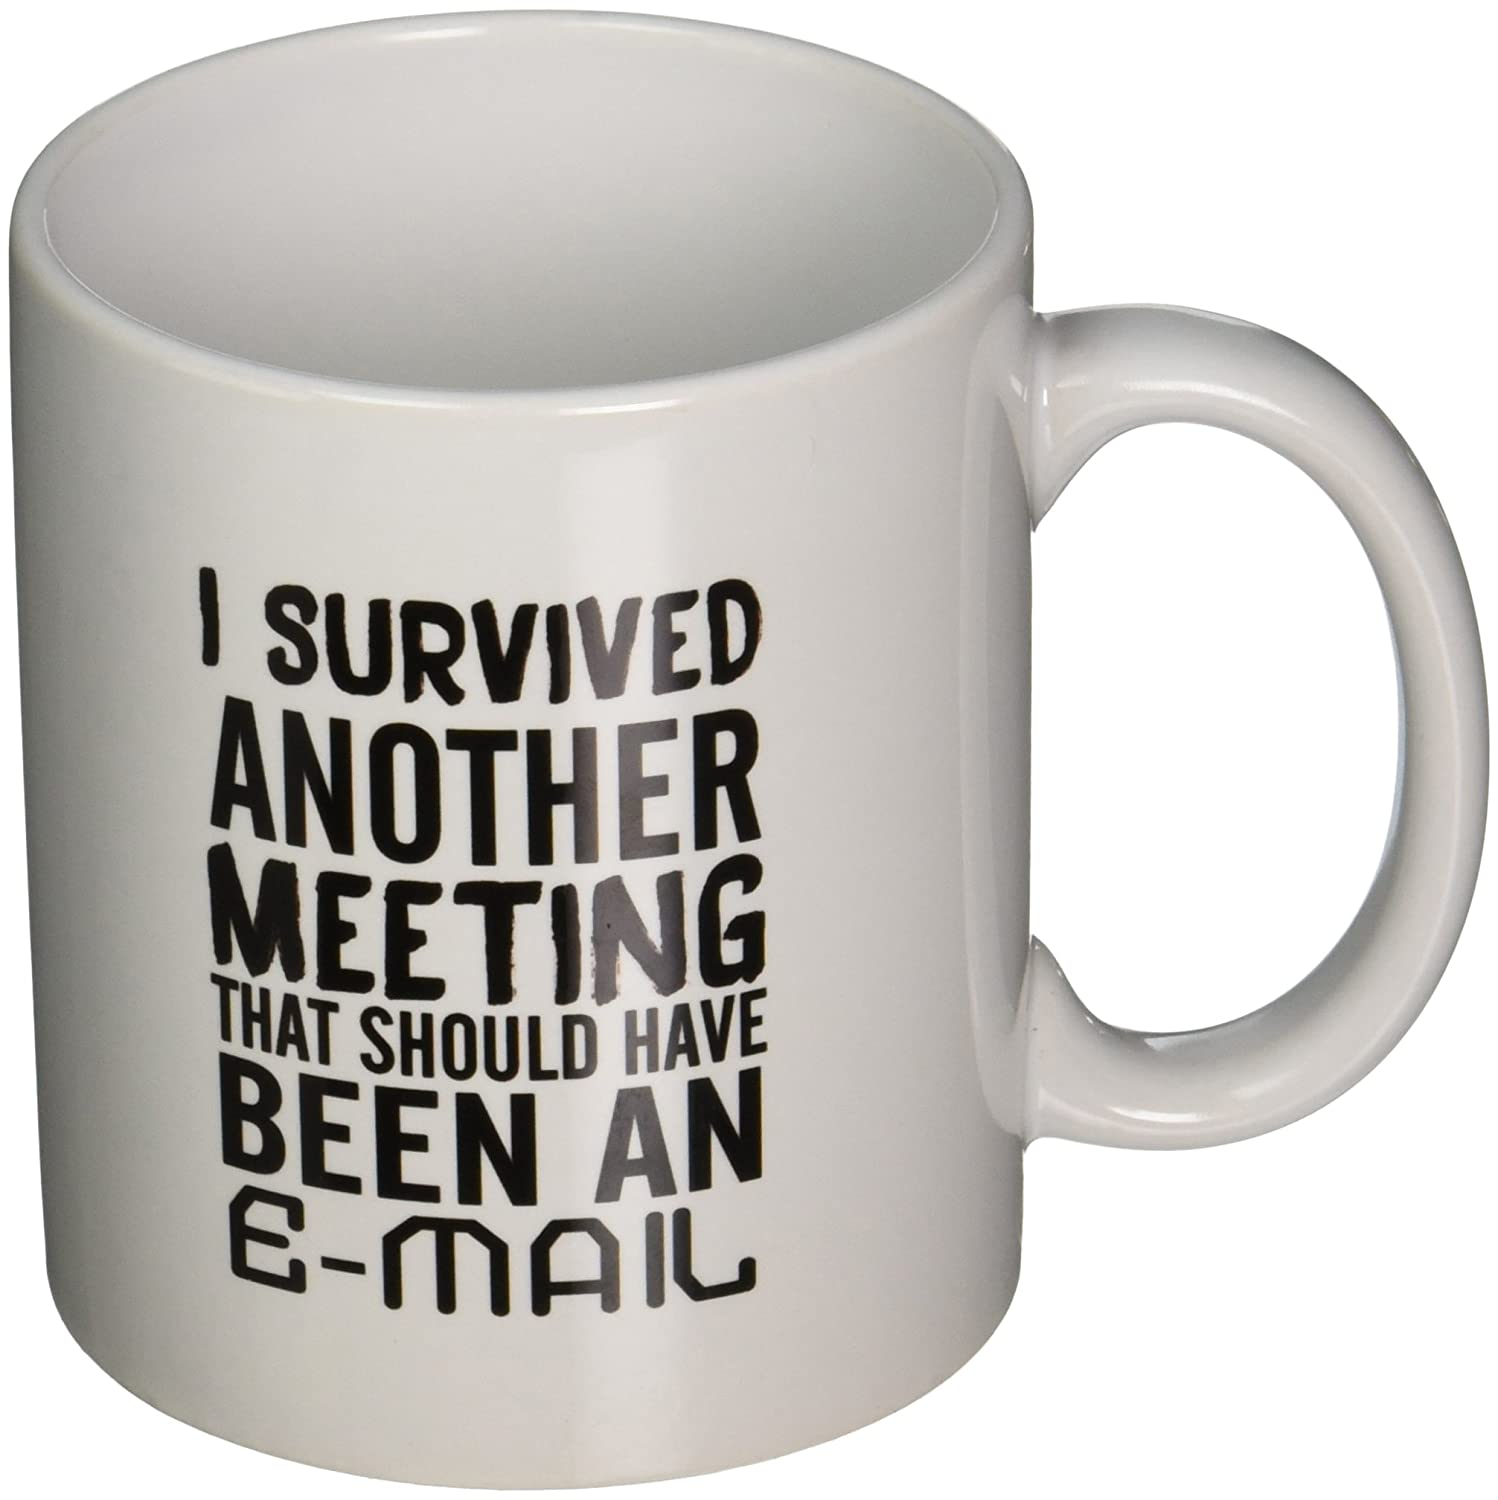 Image result for meeting email mug